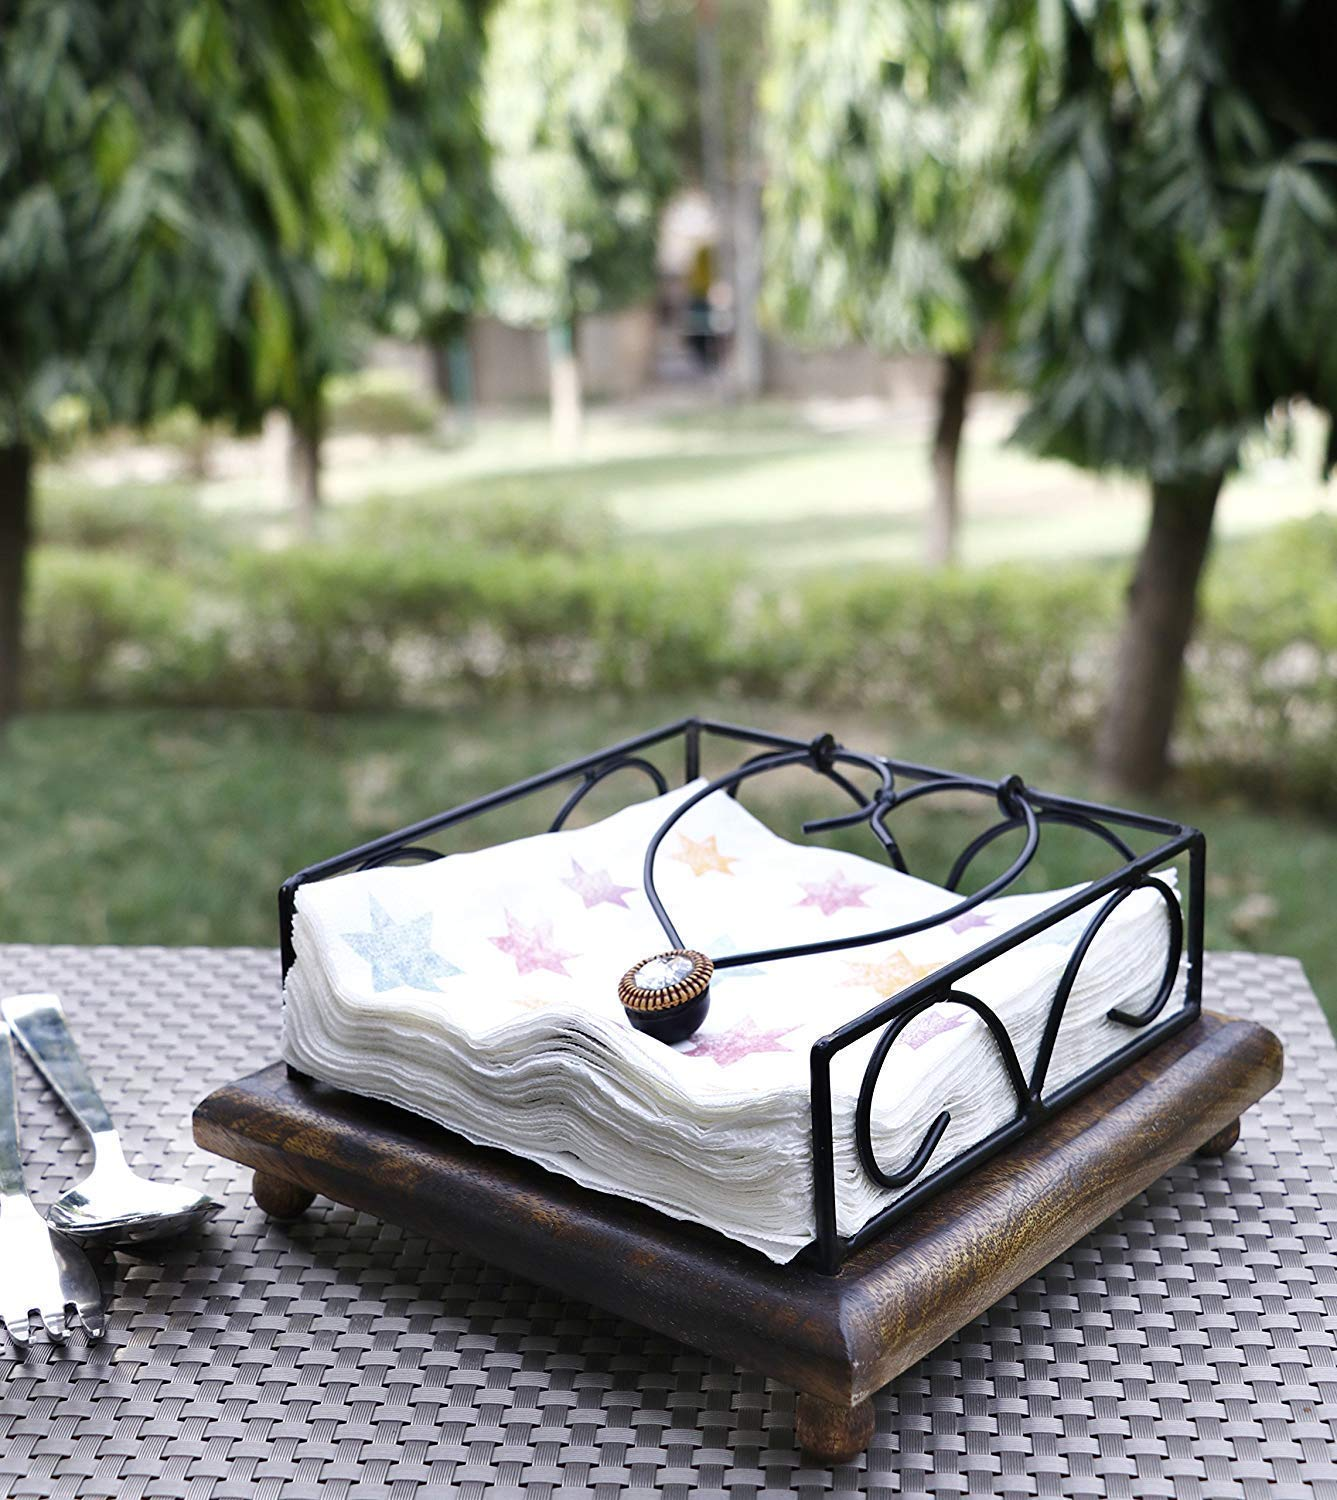 Afoyu Tissue Holder Napkin Holder for Dining Table